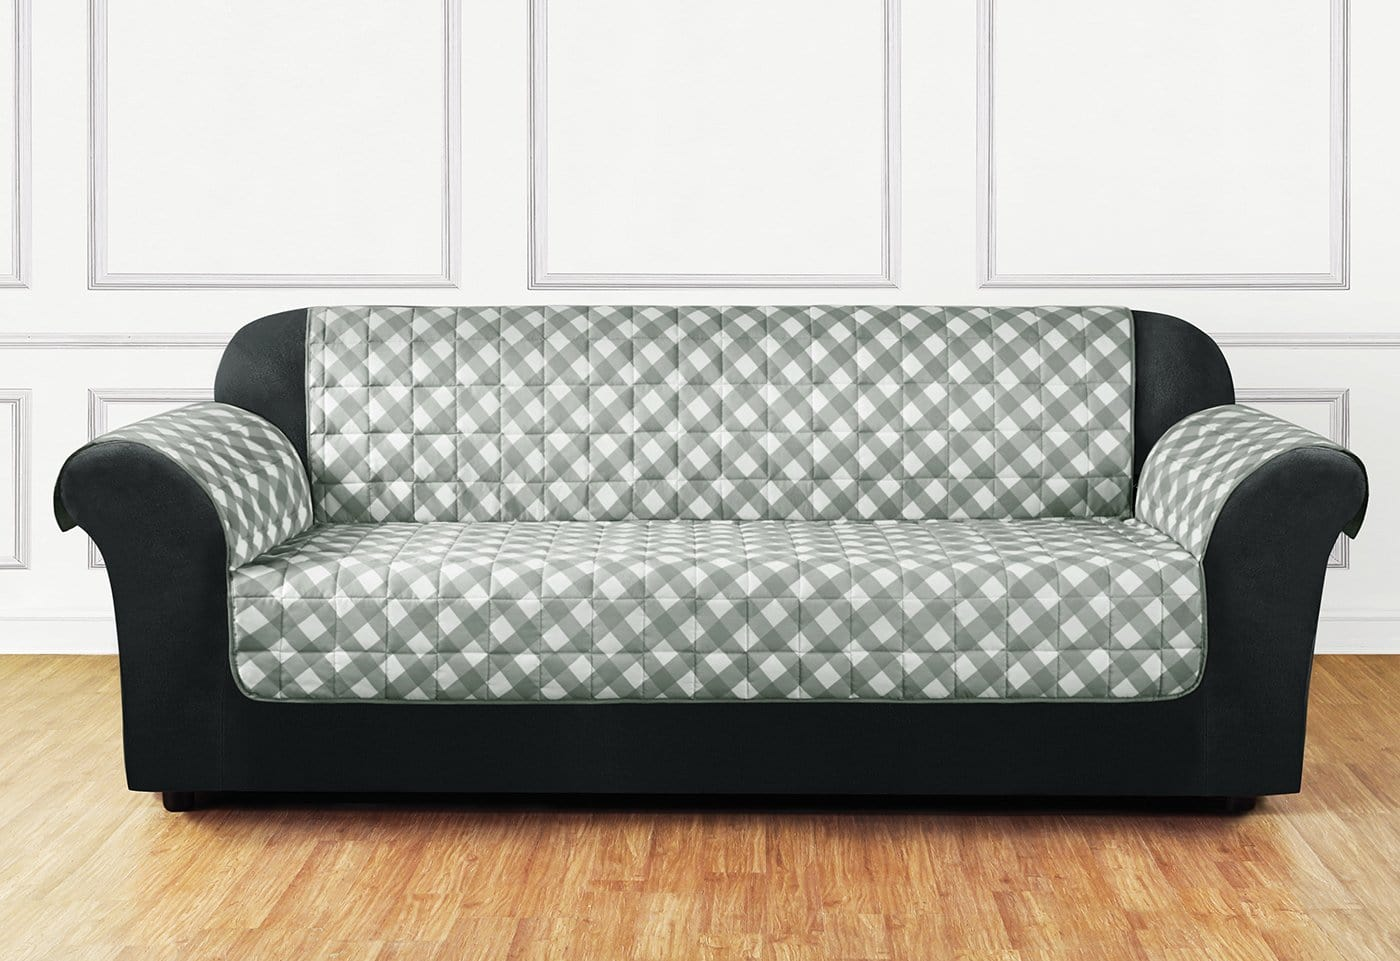 Furniture Flair Sofa Furniture Cover 100% Polyester Pet Furniture Cover Machine Washable - Sofa / Gray